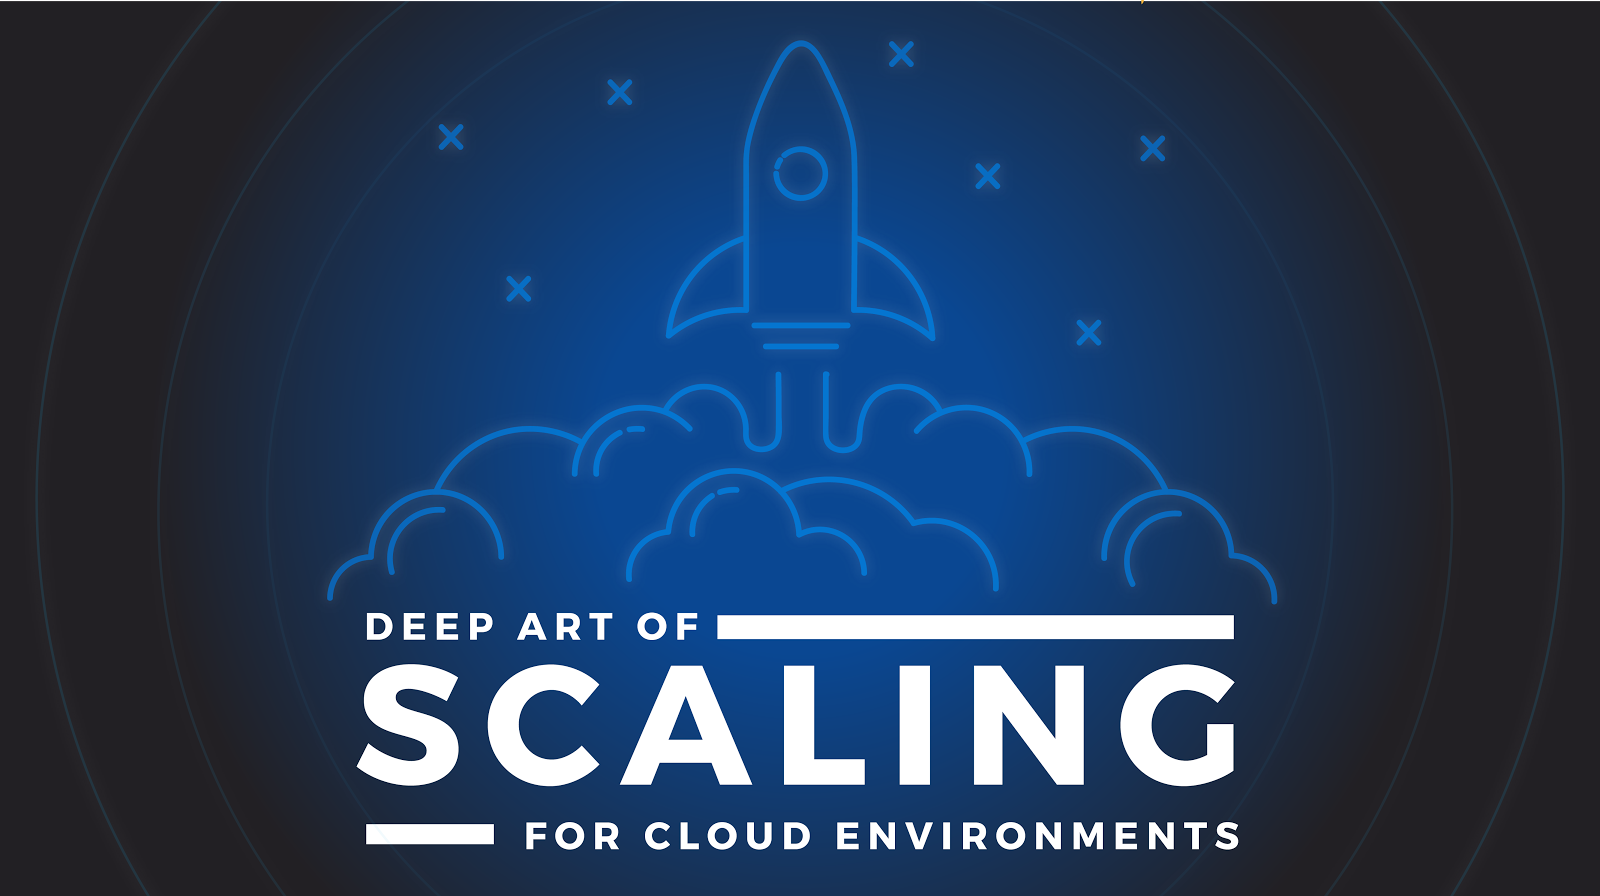 Deep Art of Scaling for Cloud Environments